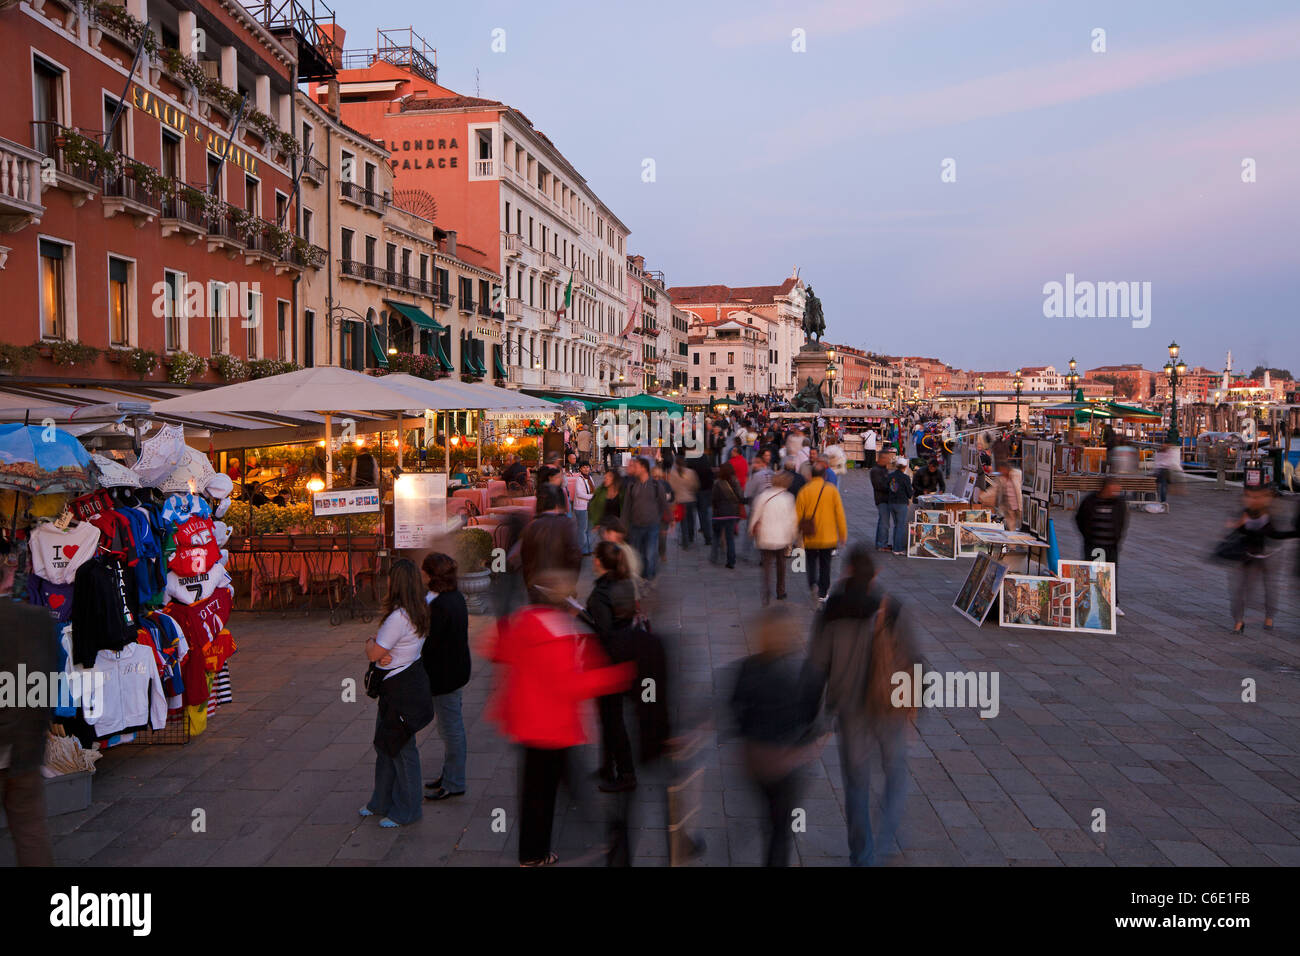 Restaurants and Cafes at dusk alongside the Grand Canal near St Marks Square, Venice, Italy - Stock Image